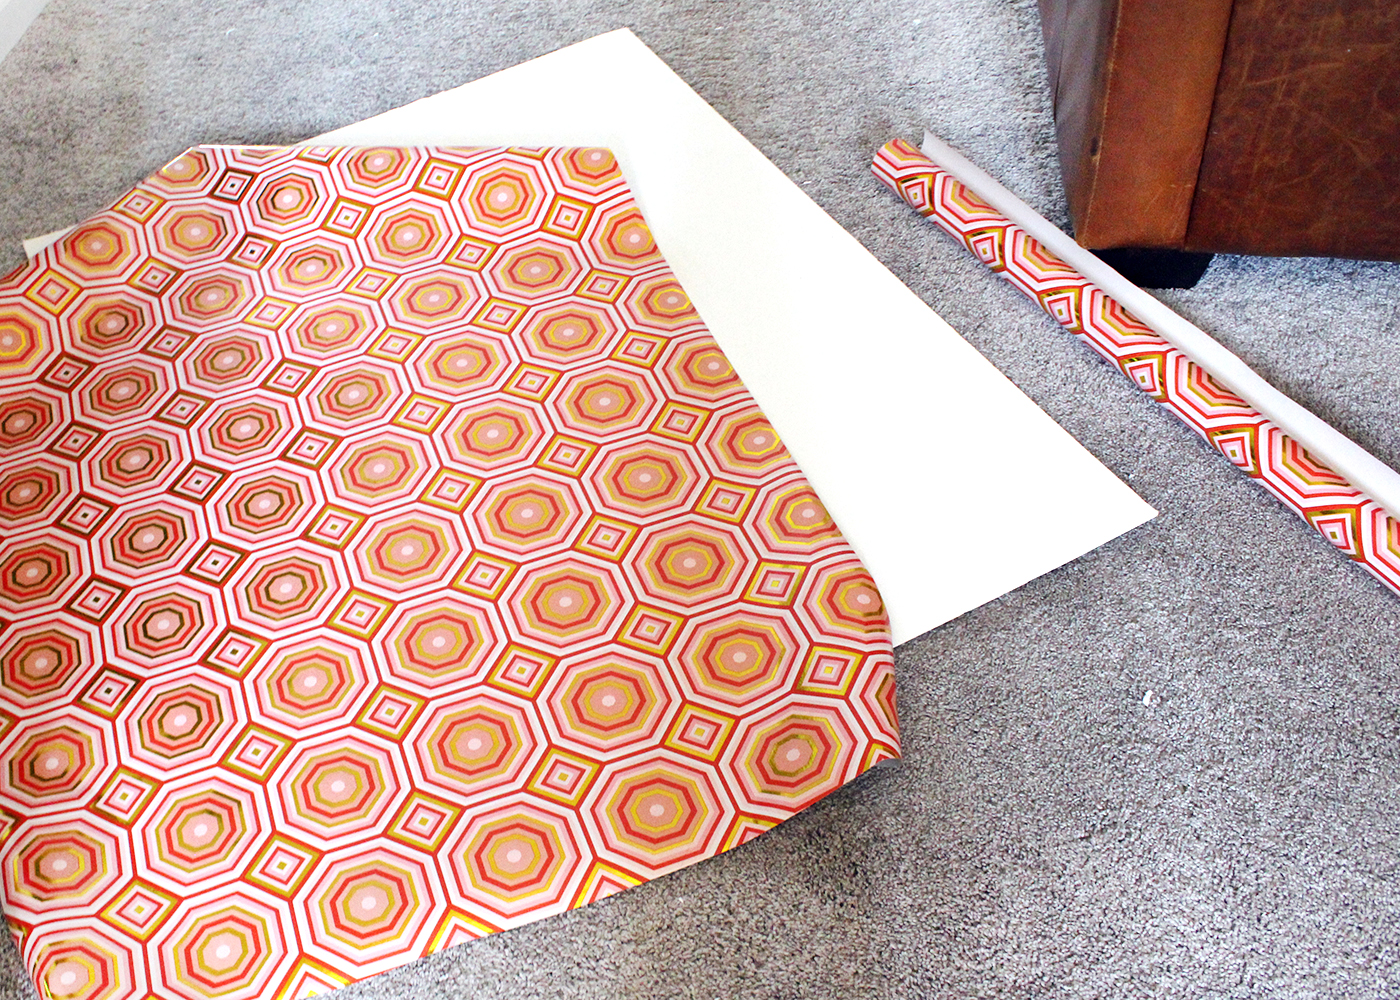 How to Make a Modern Christmas Card Holder Using Wrapping Paper